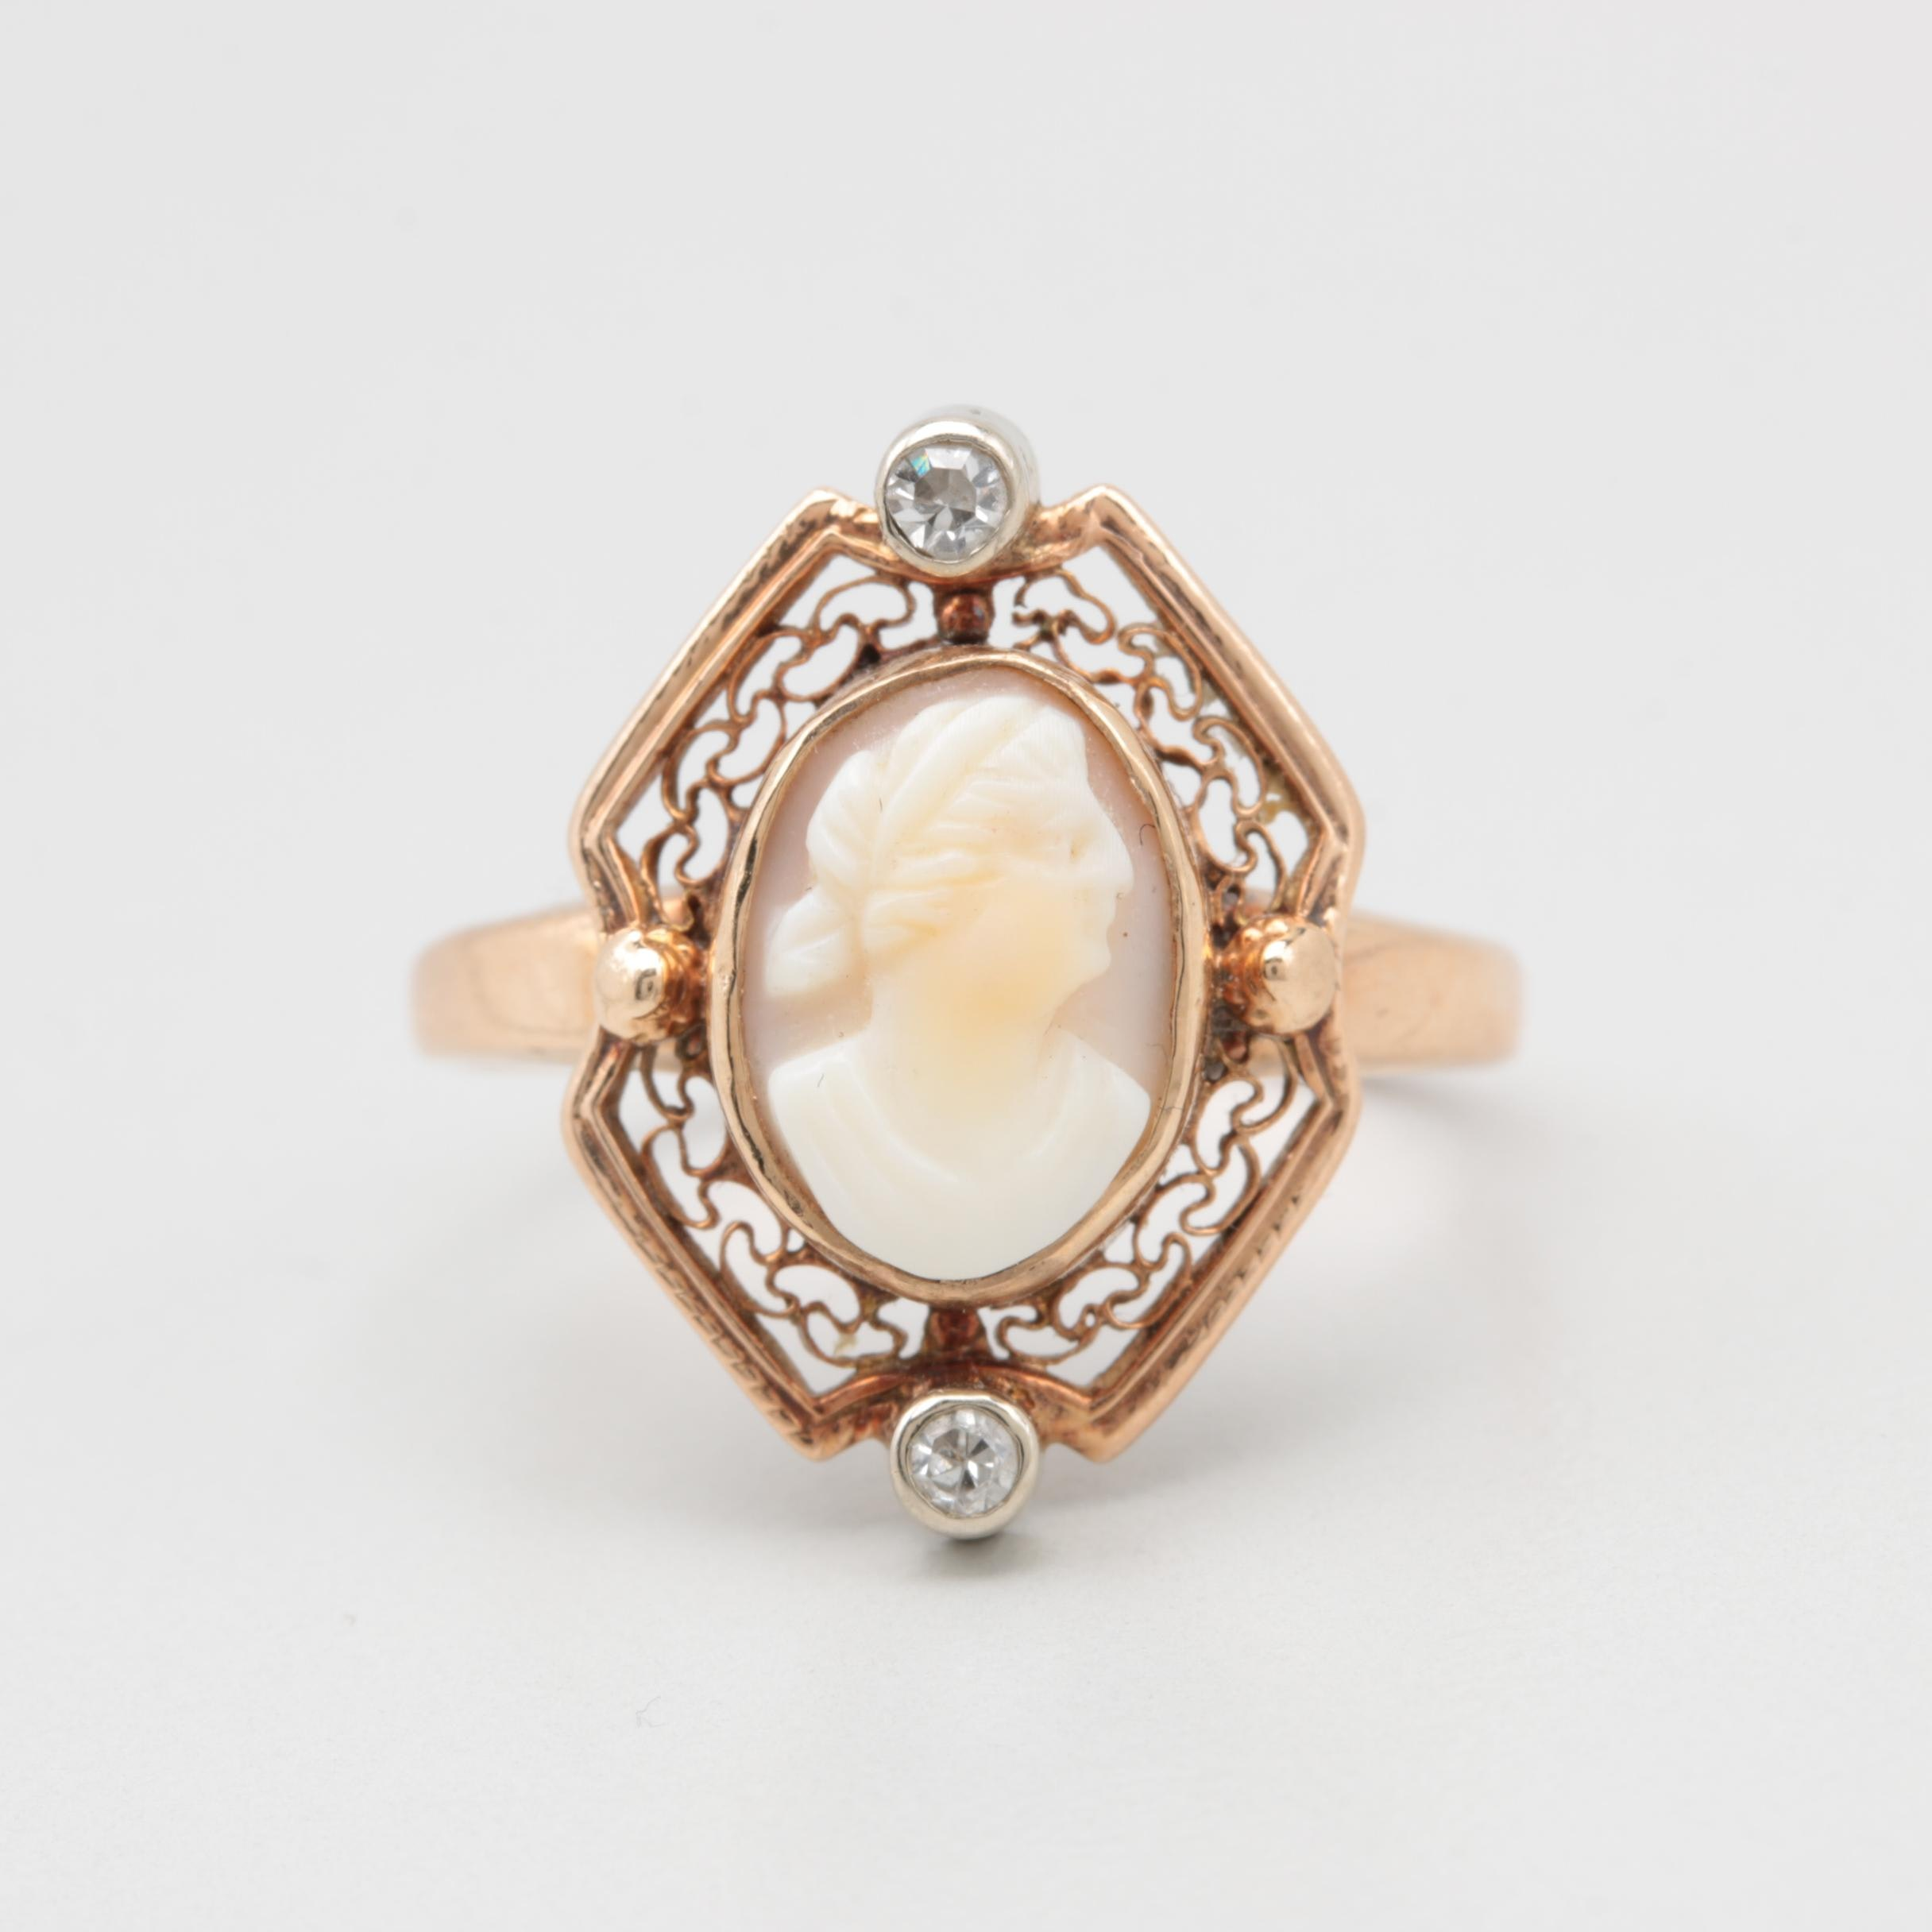 Vintage 10K Yellow Gold Diamond and Shell Cameo Ring